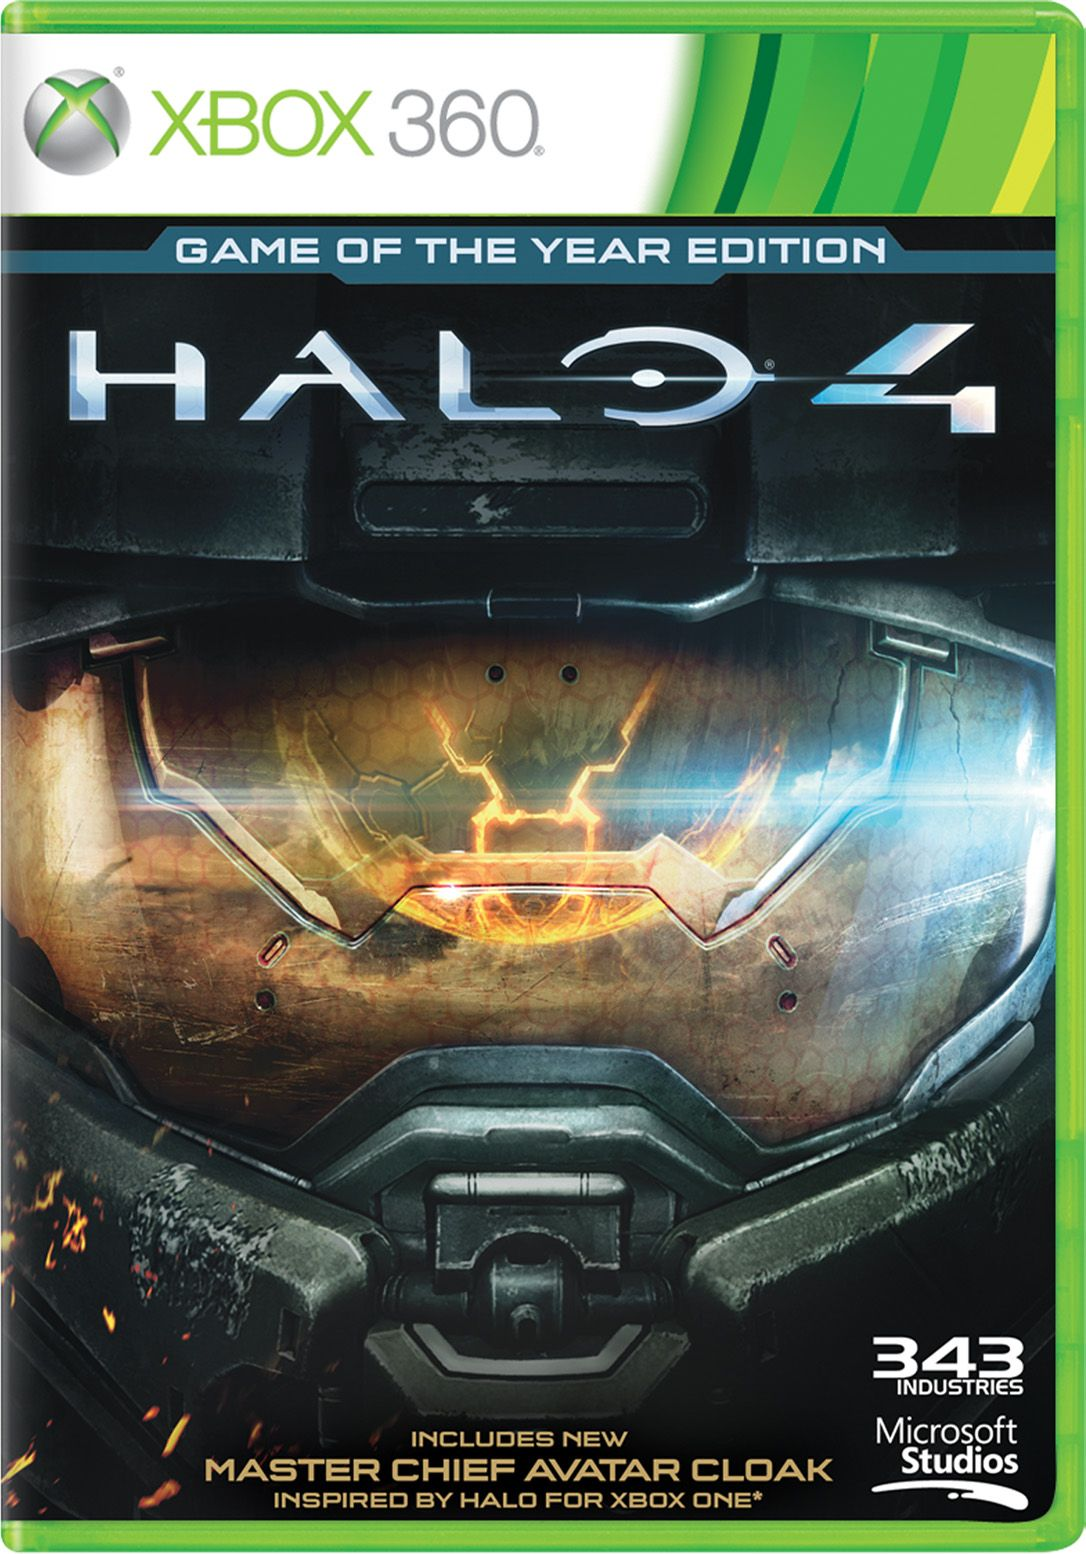 Halo 4 Game of the Year Edition for Xbox 360 8Q3V7CHD8MQX